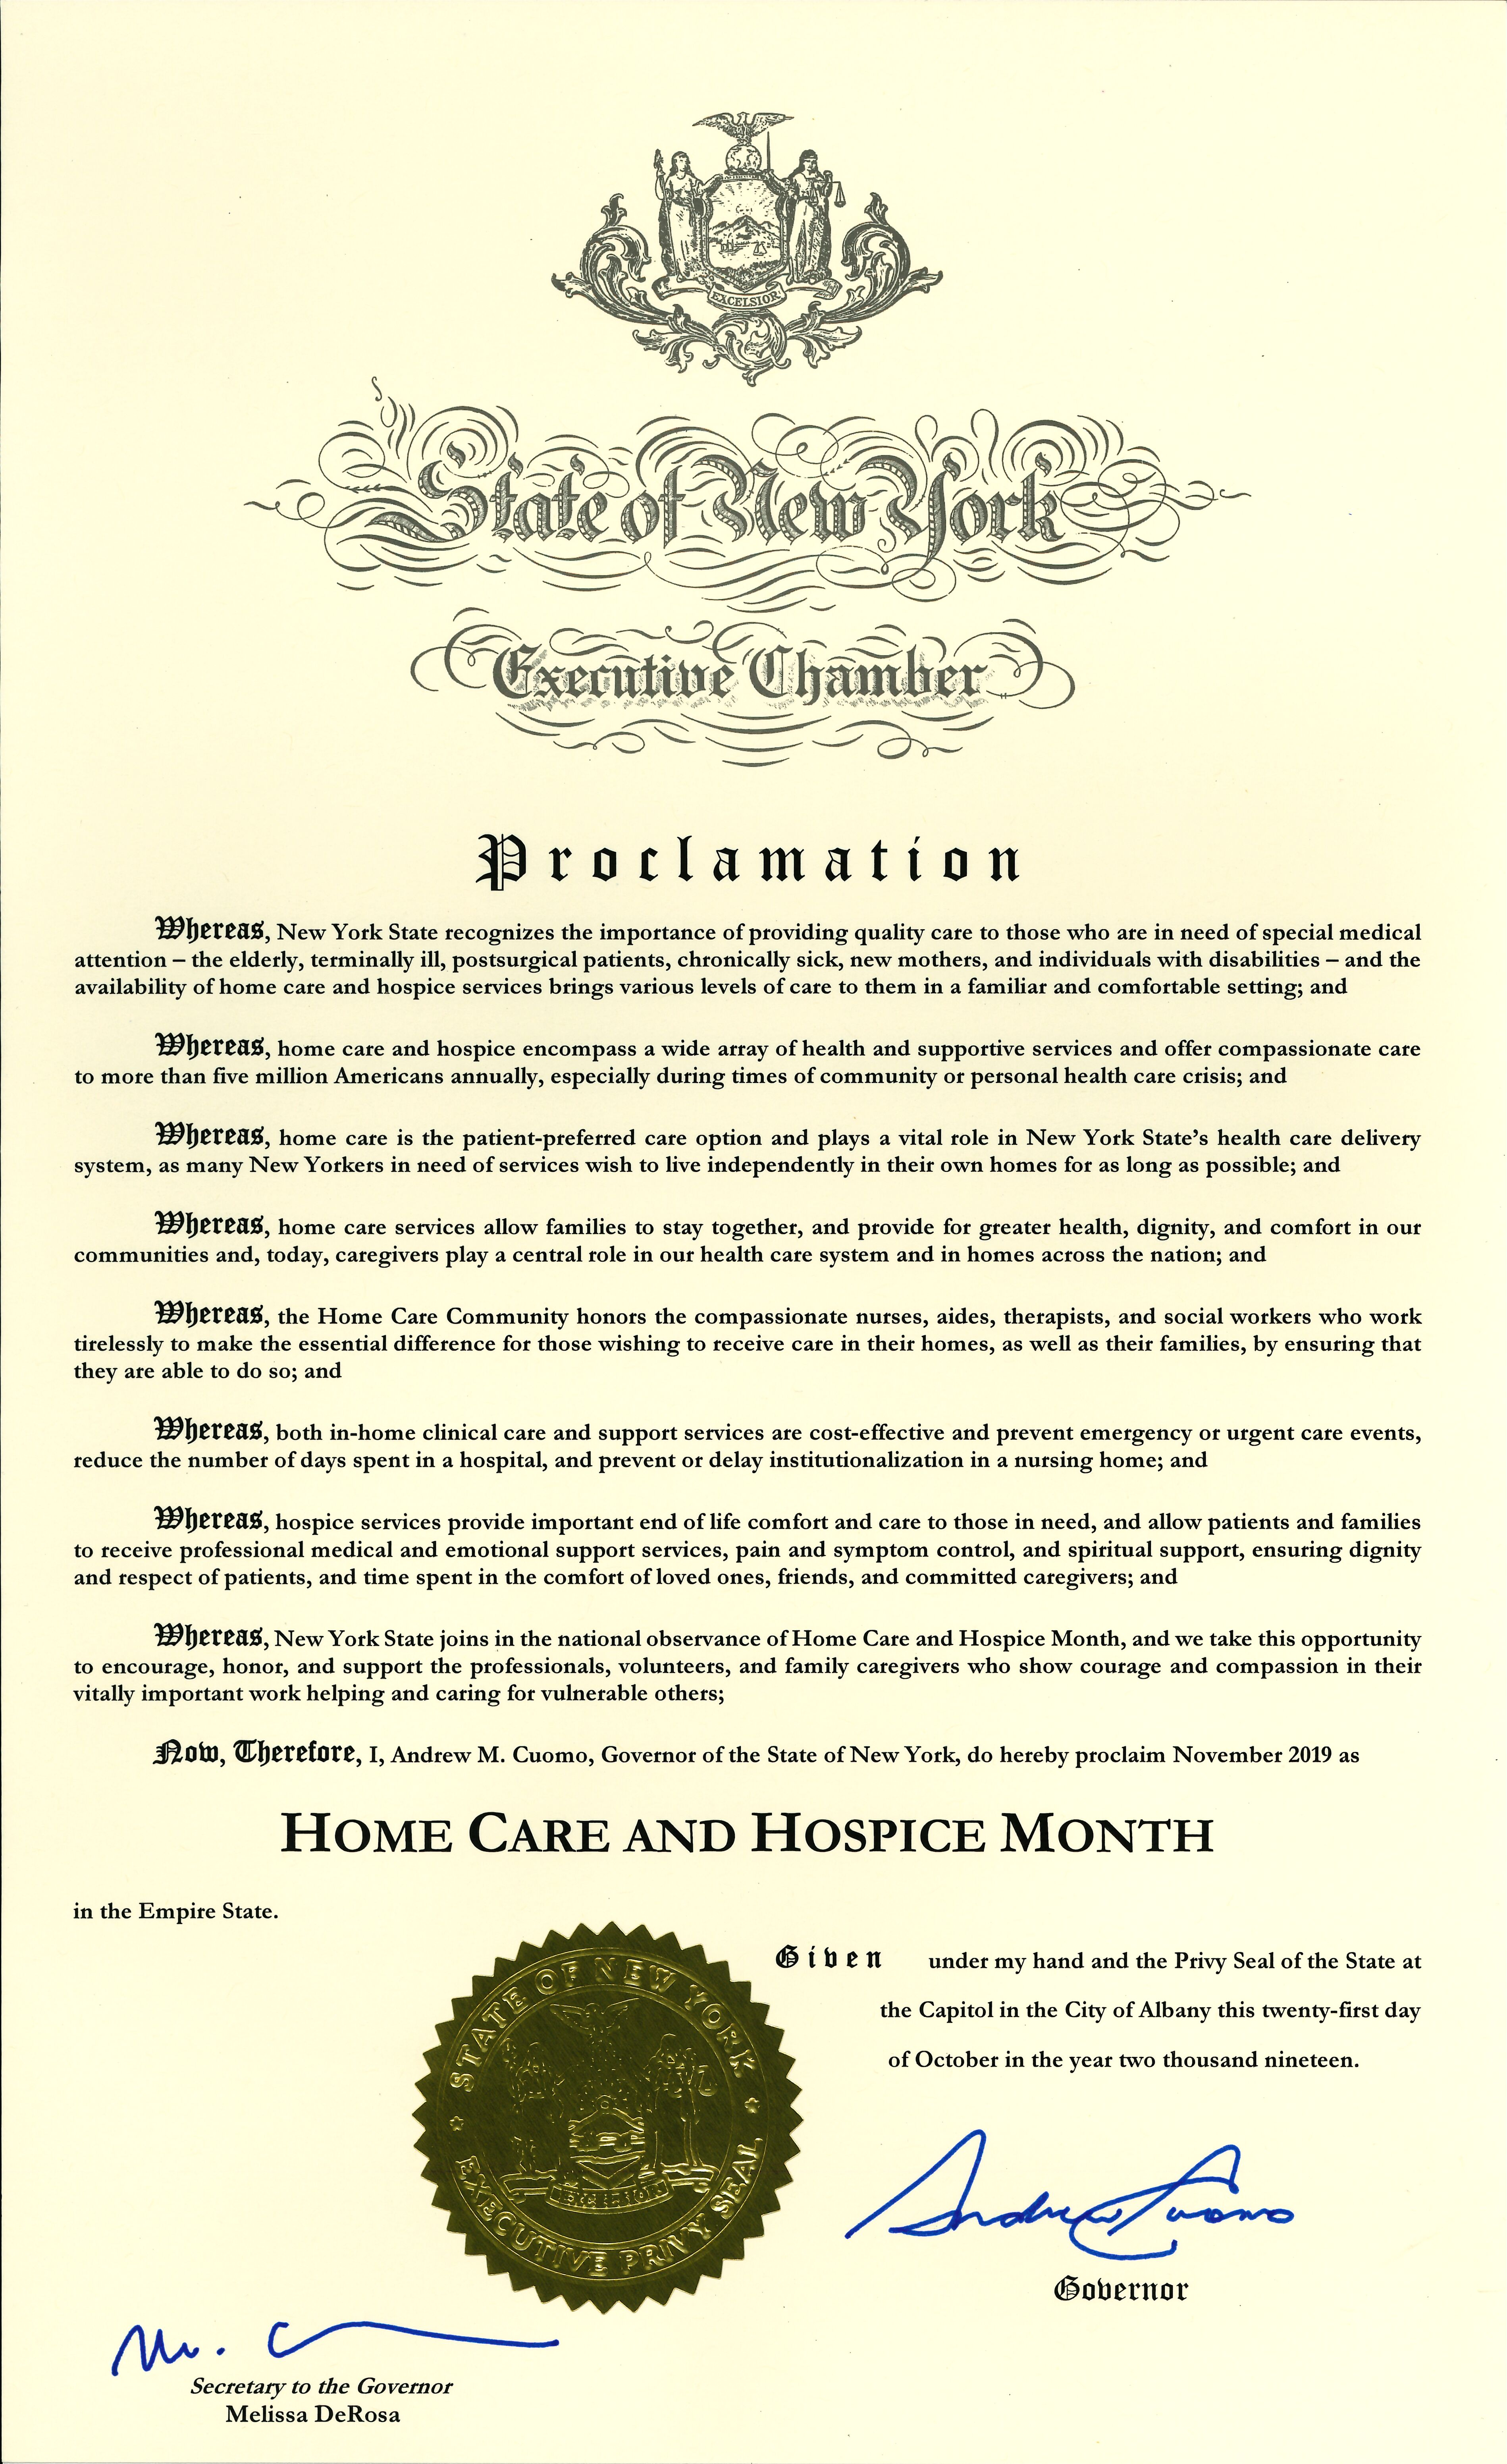 Home Care and Hospice Month New York State Proclamation